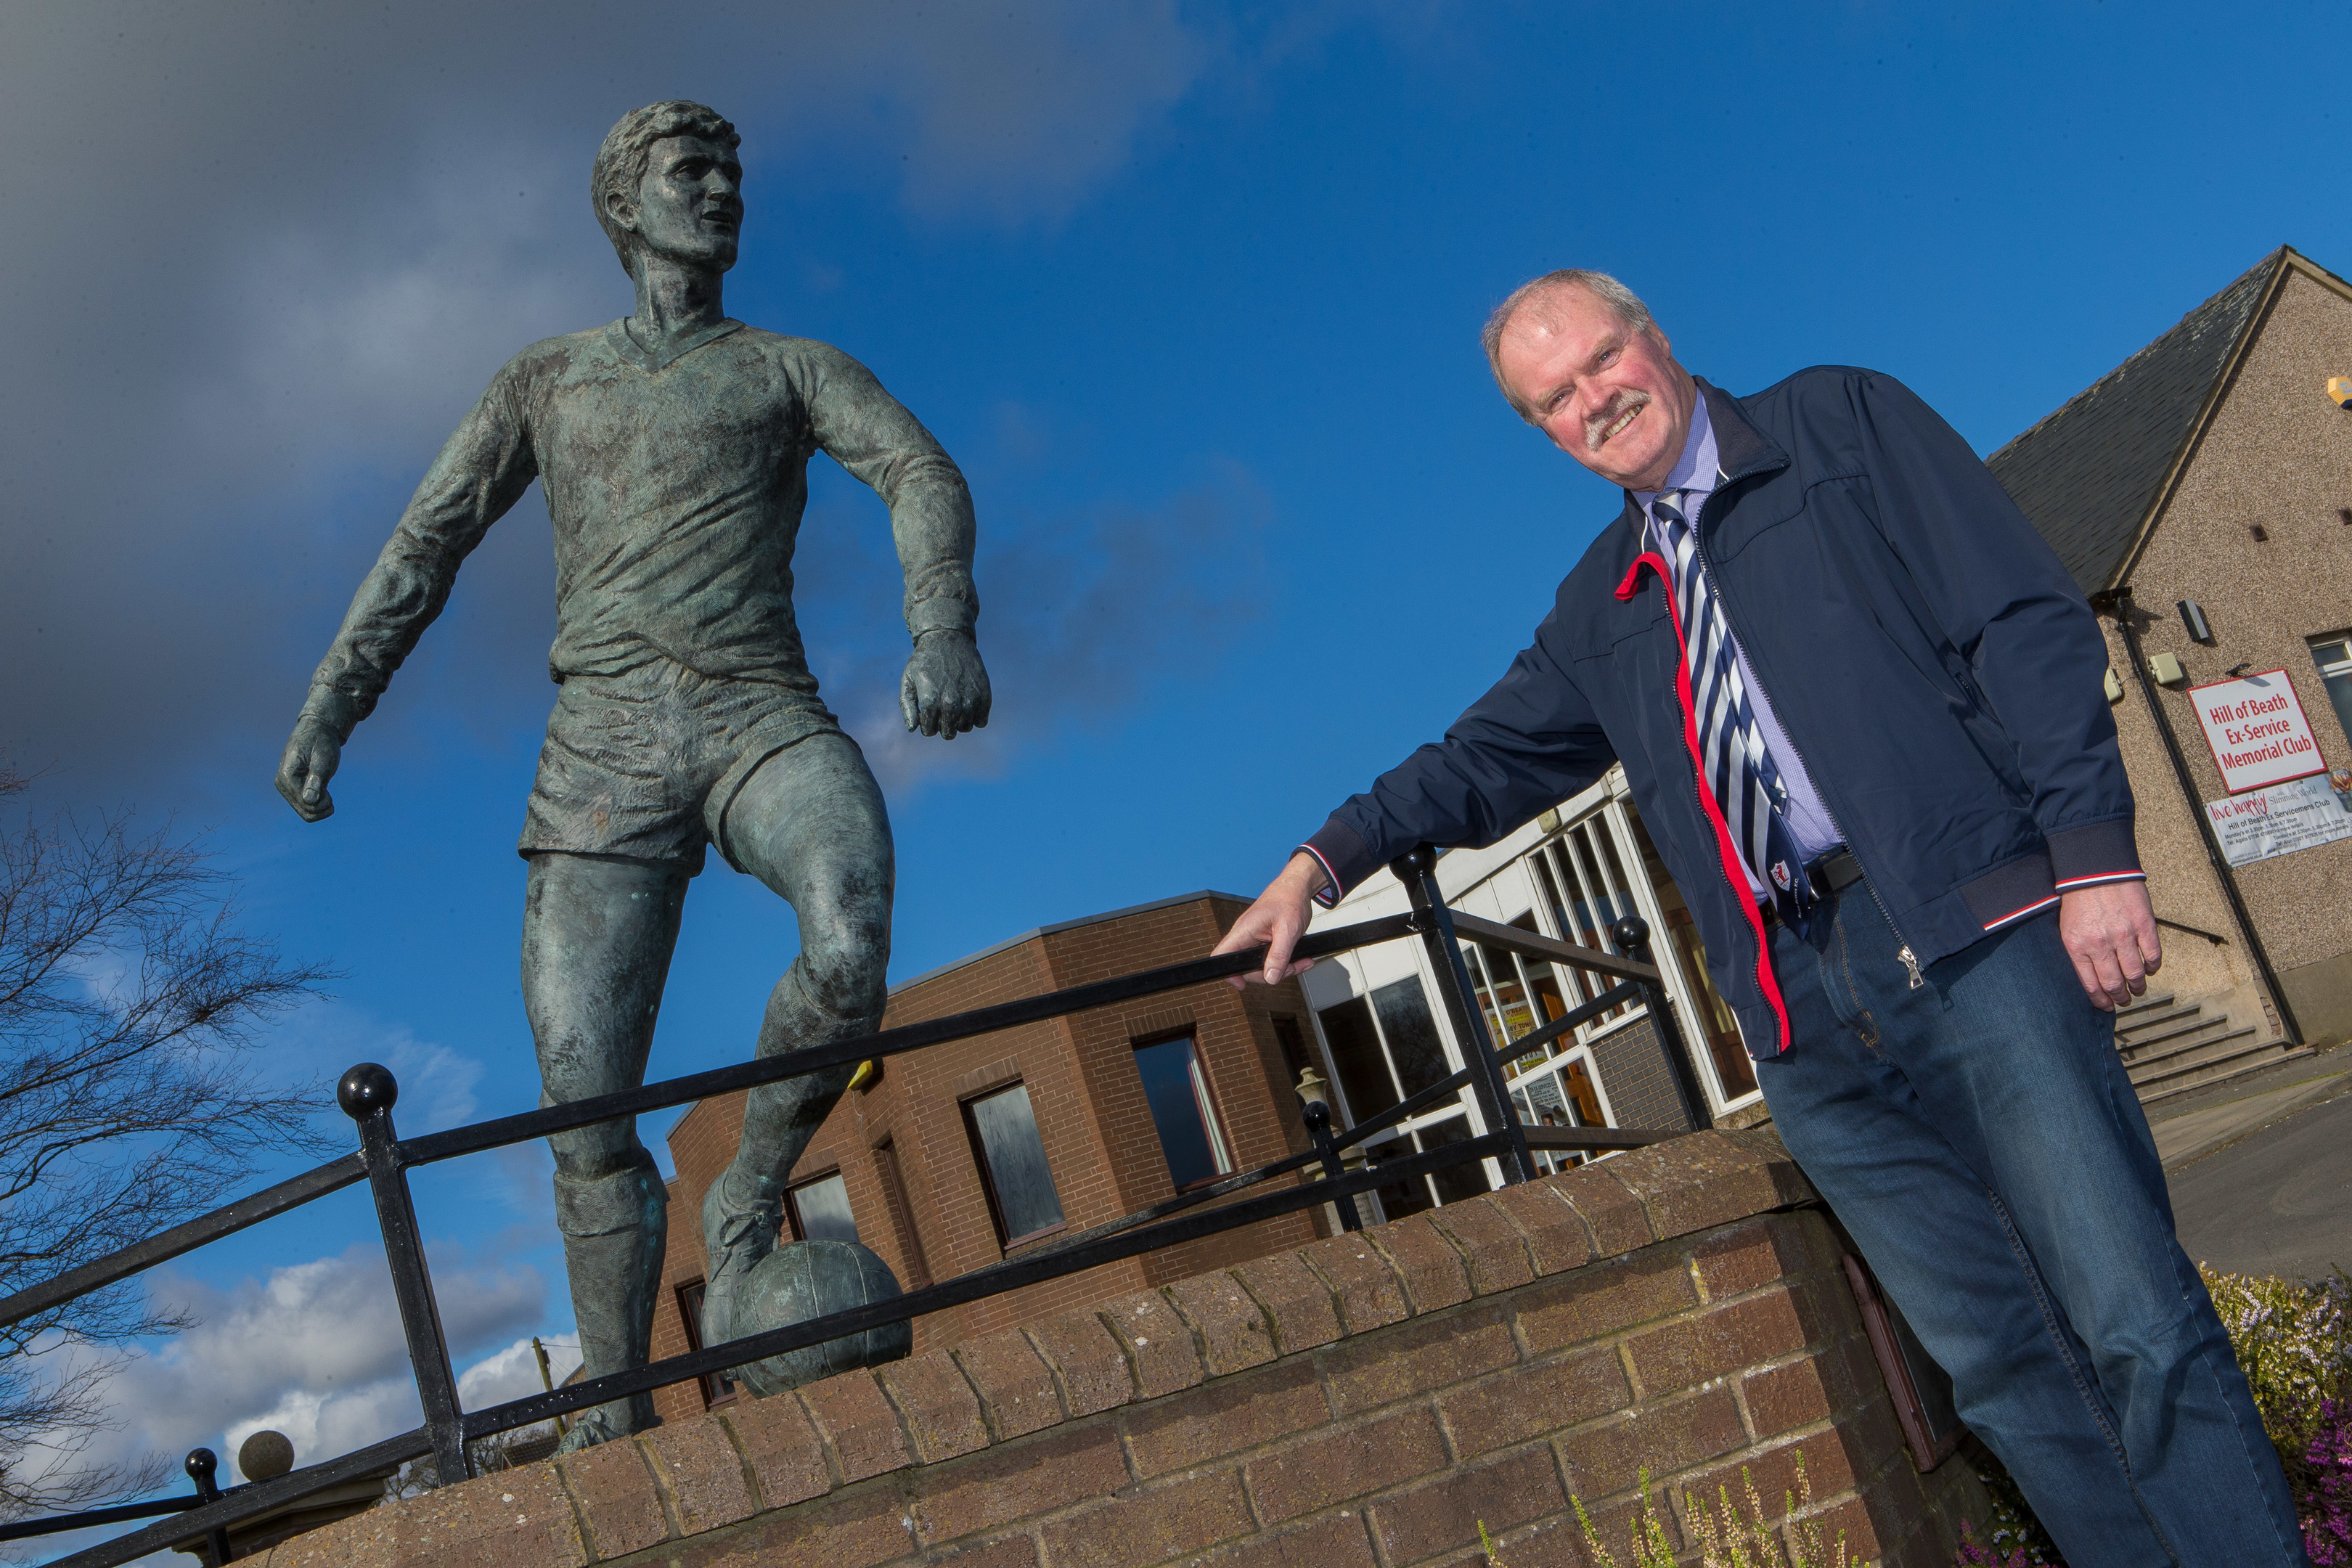 Raith director Dave Wann alongside the famous statue of Jim Baxter in Hill of Beath.